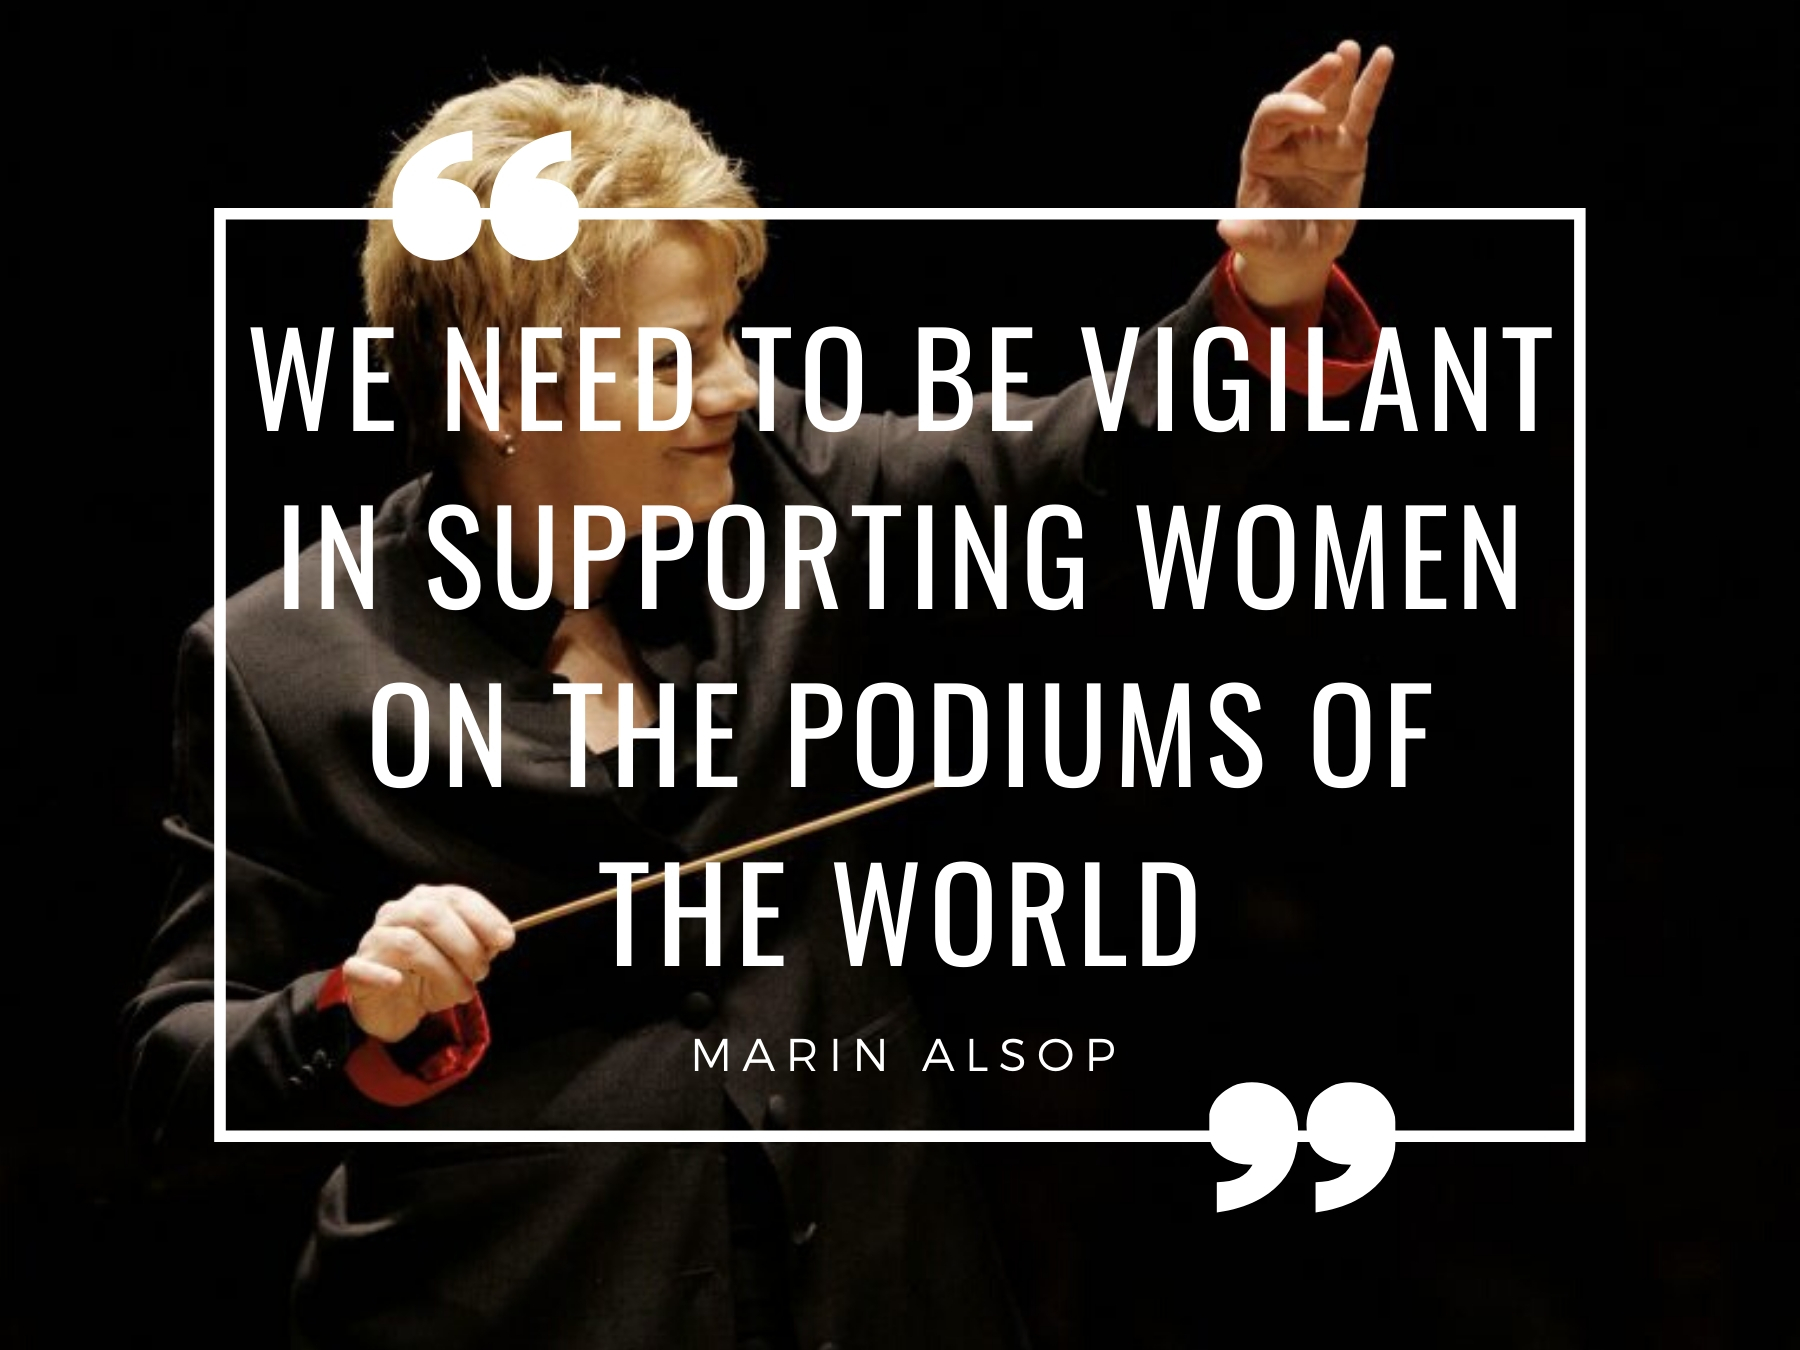 woman conducting with text on top of image